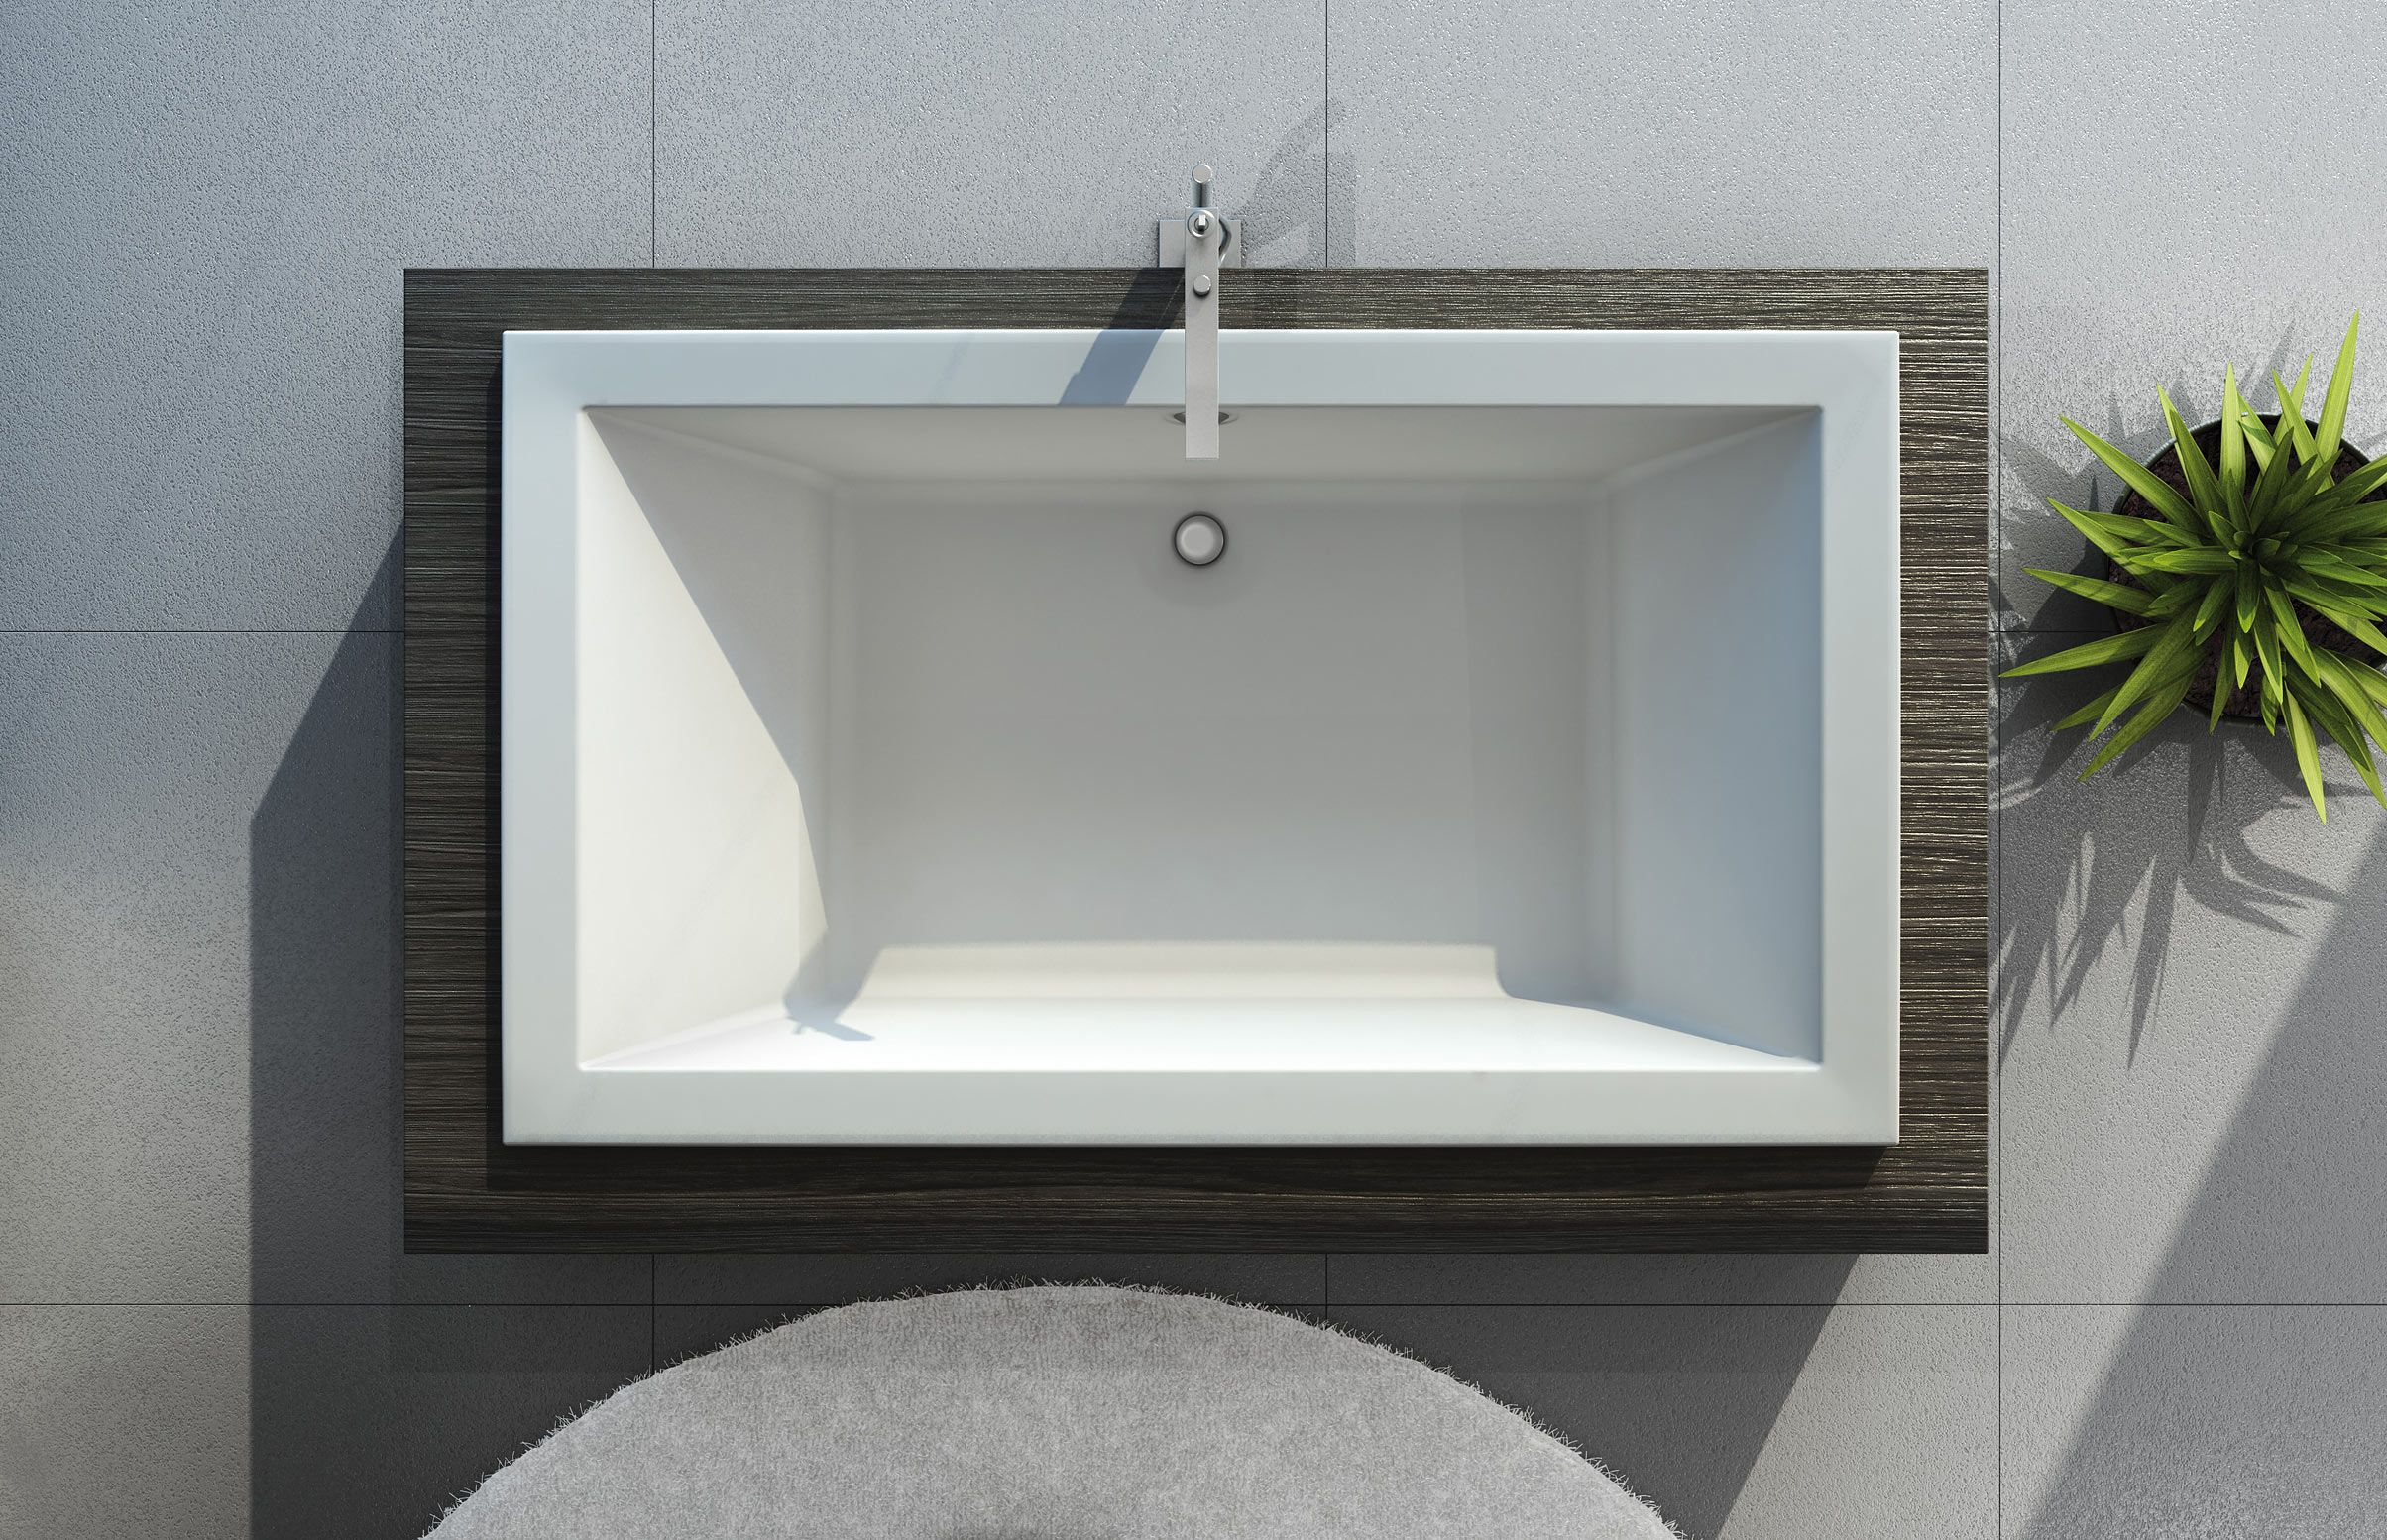 MAAX - Kava Drop-in Bathtub www.maax.com | bathroom | Pinterest ...